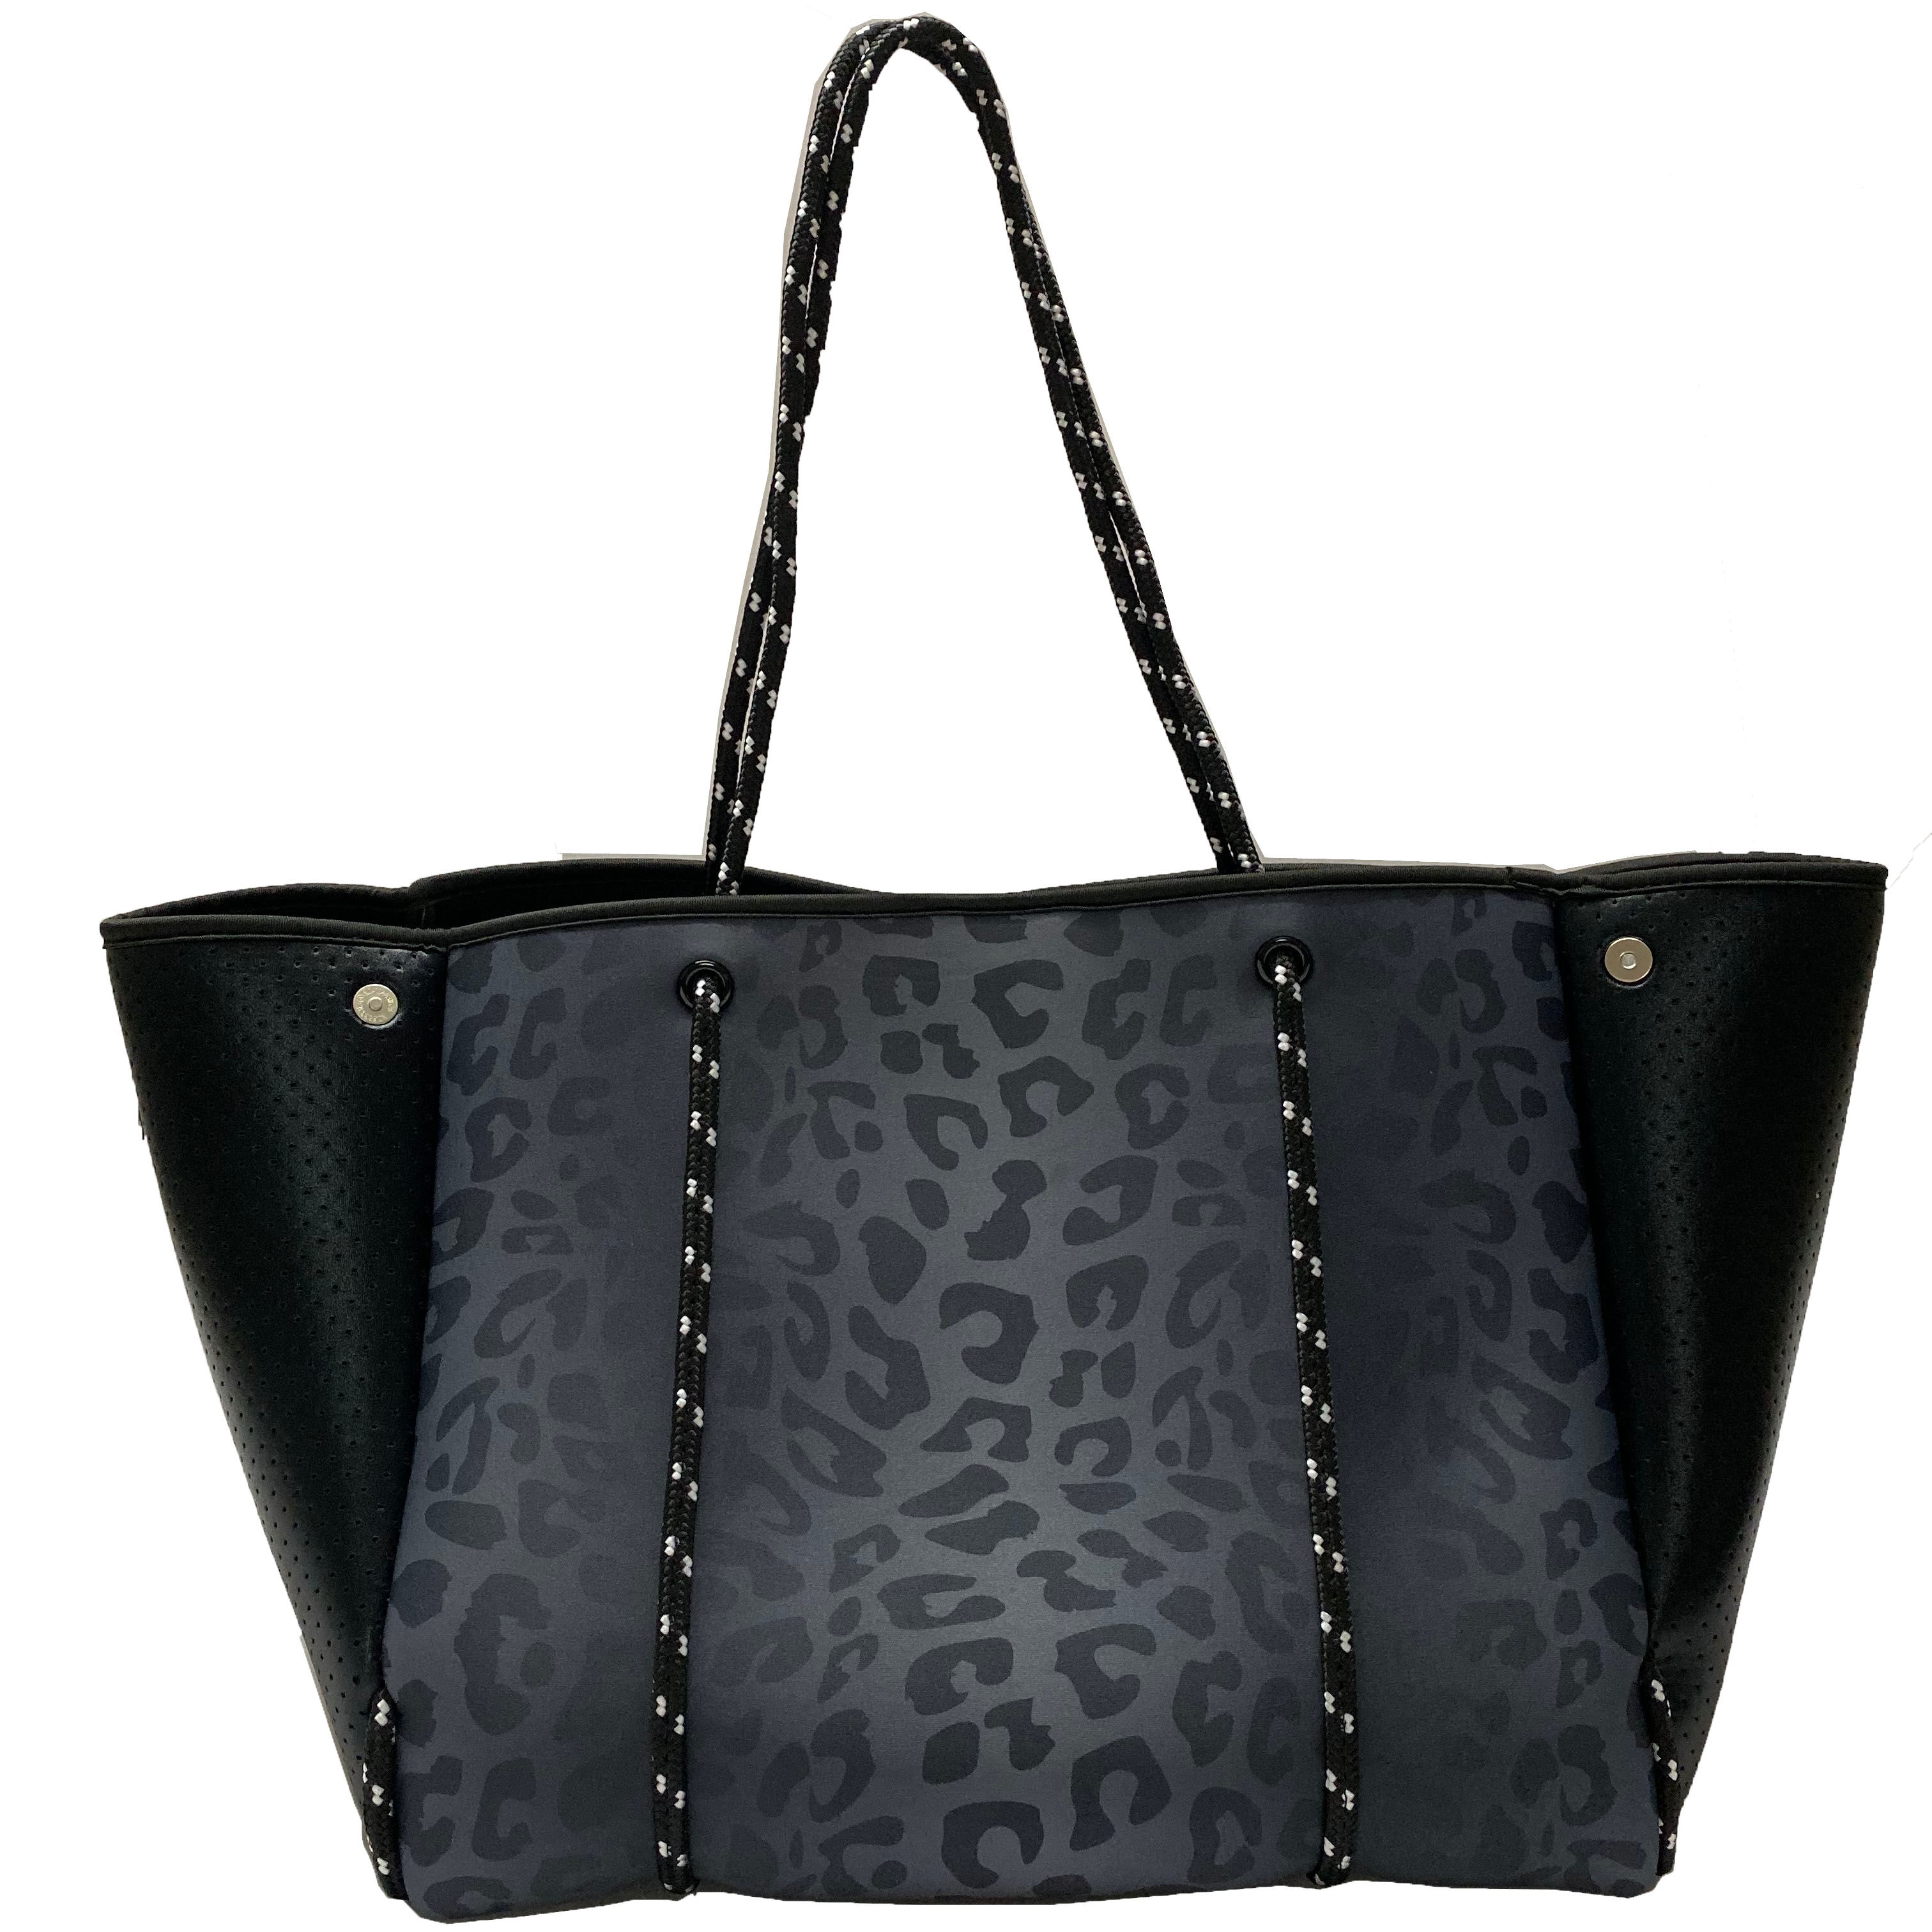 2020 leopard printing neoprene shoulder bag